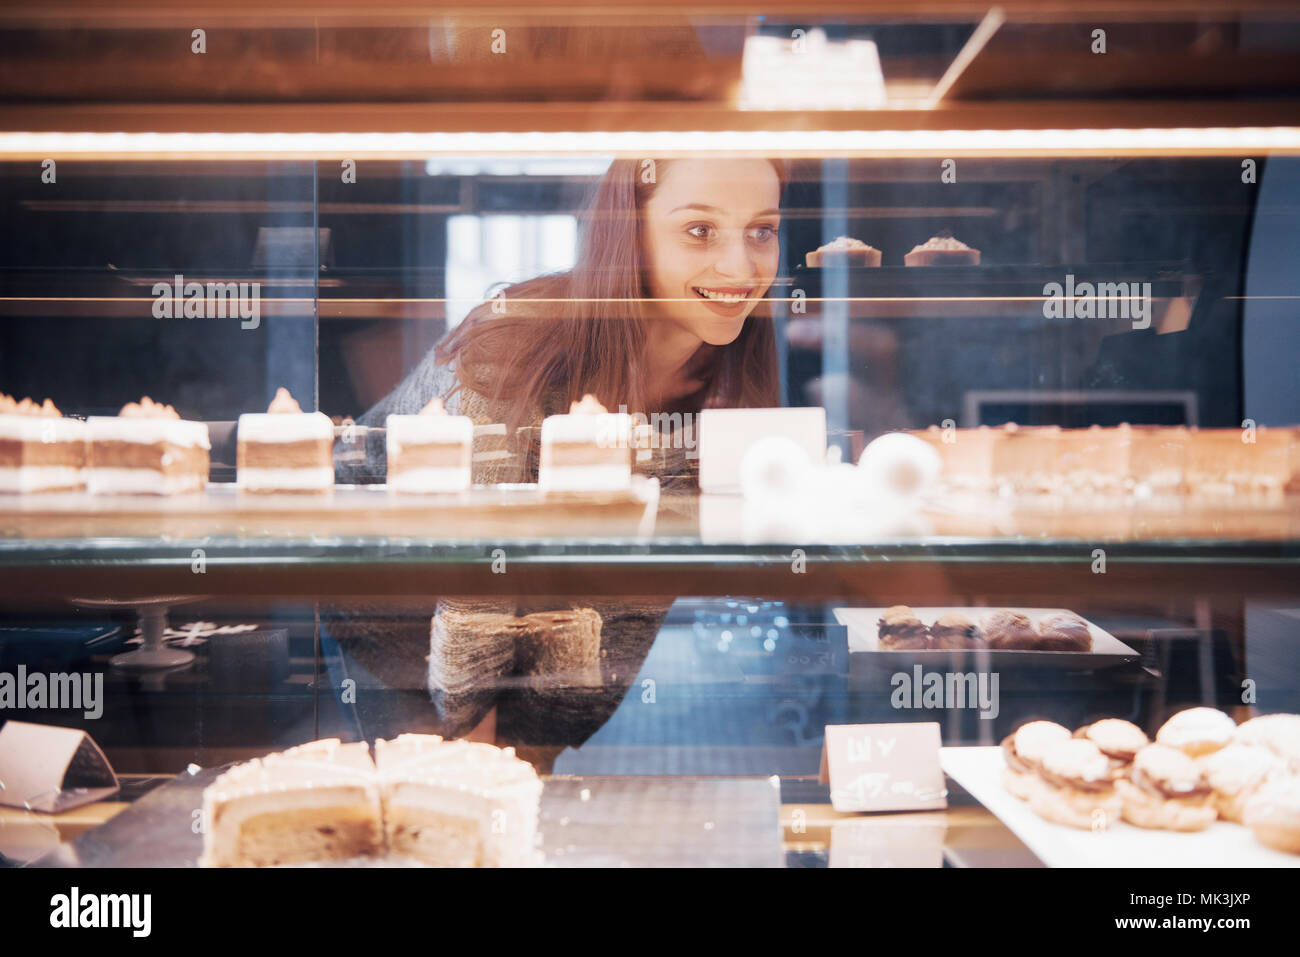 Smiling woman at camera through the showcase with sweet and cakes in modern cafe interior - Stock Image